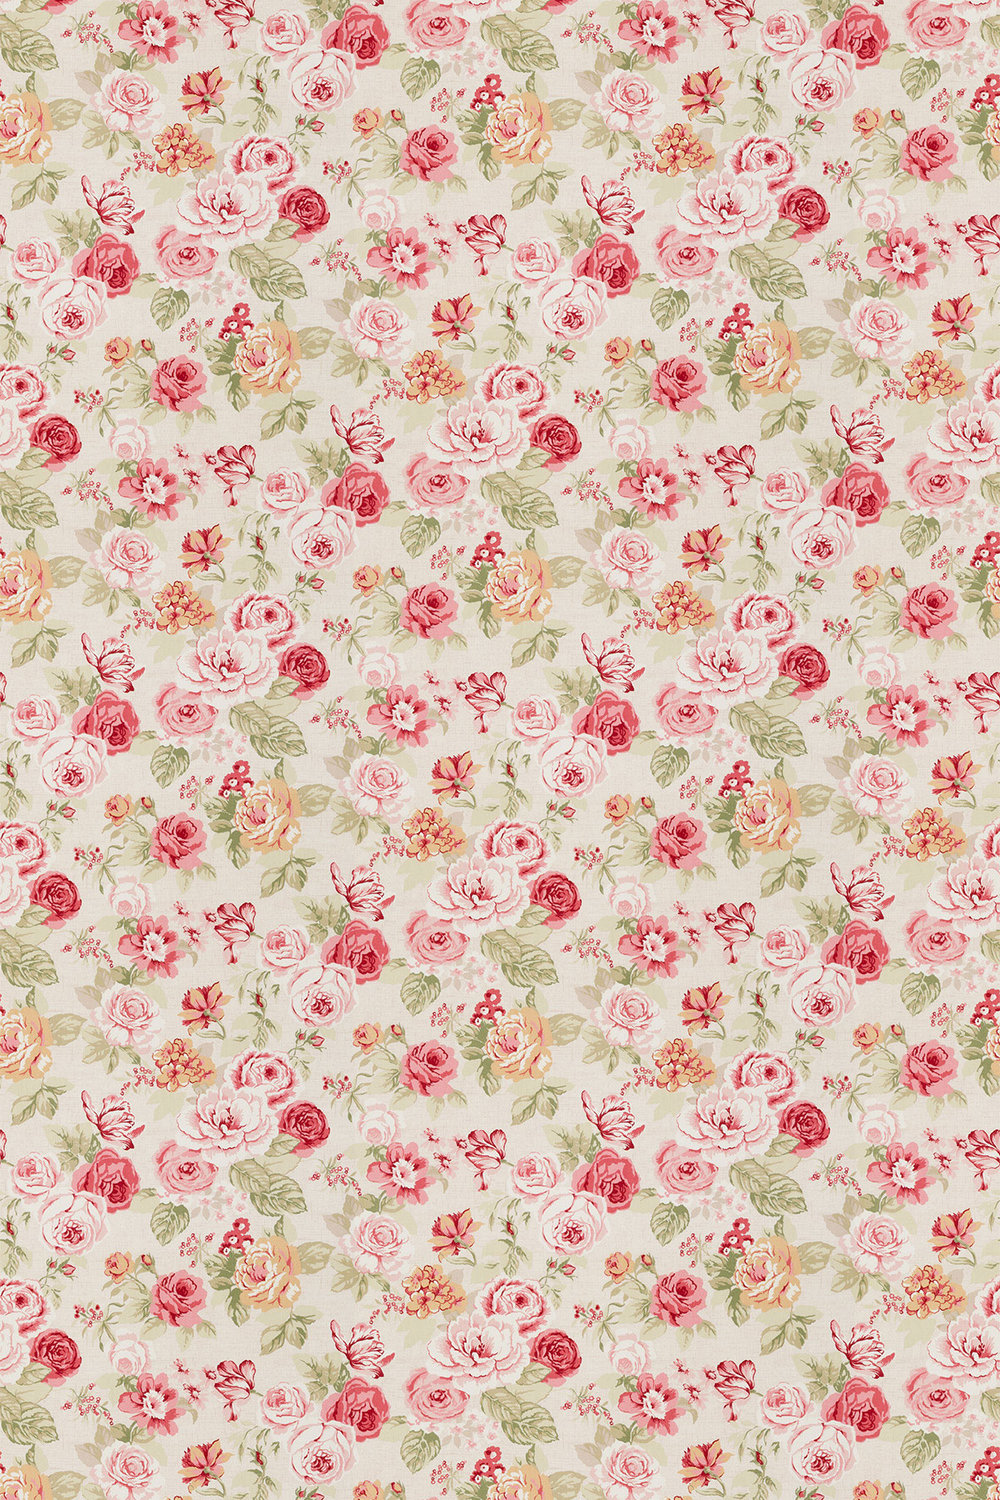 Studio G Genevieve Old Rose Fabric - Product code: F0622/04